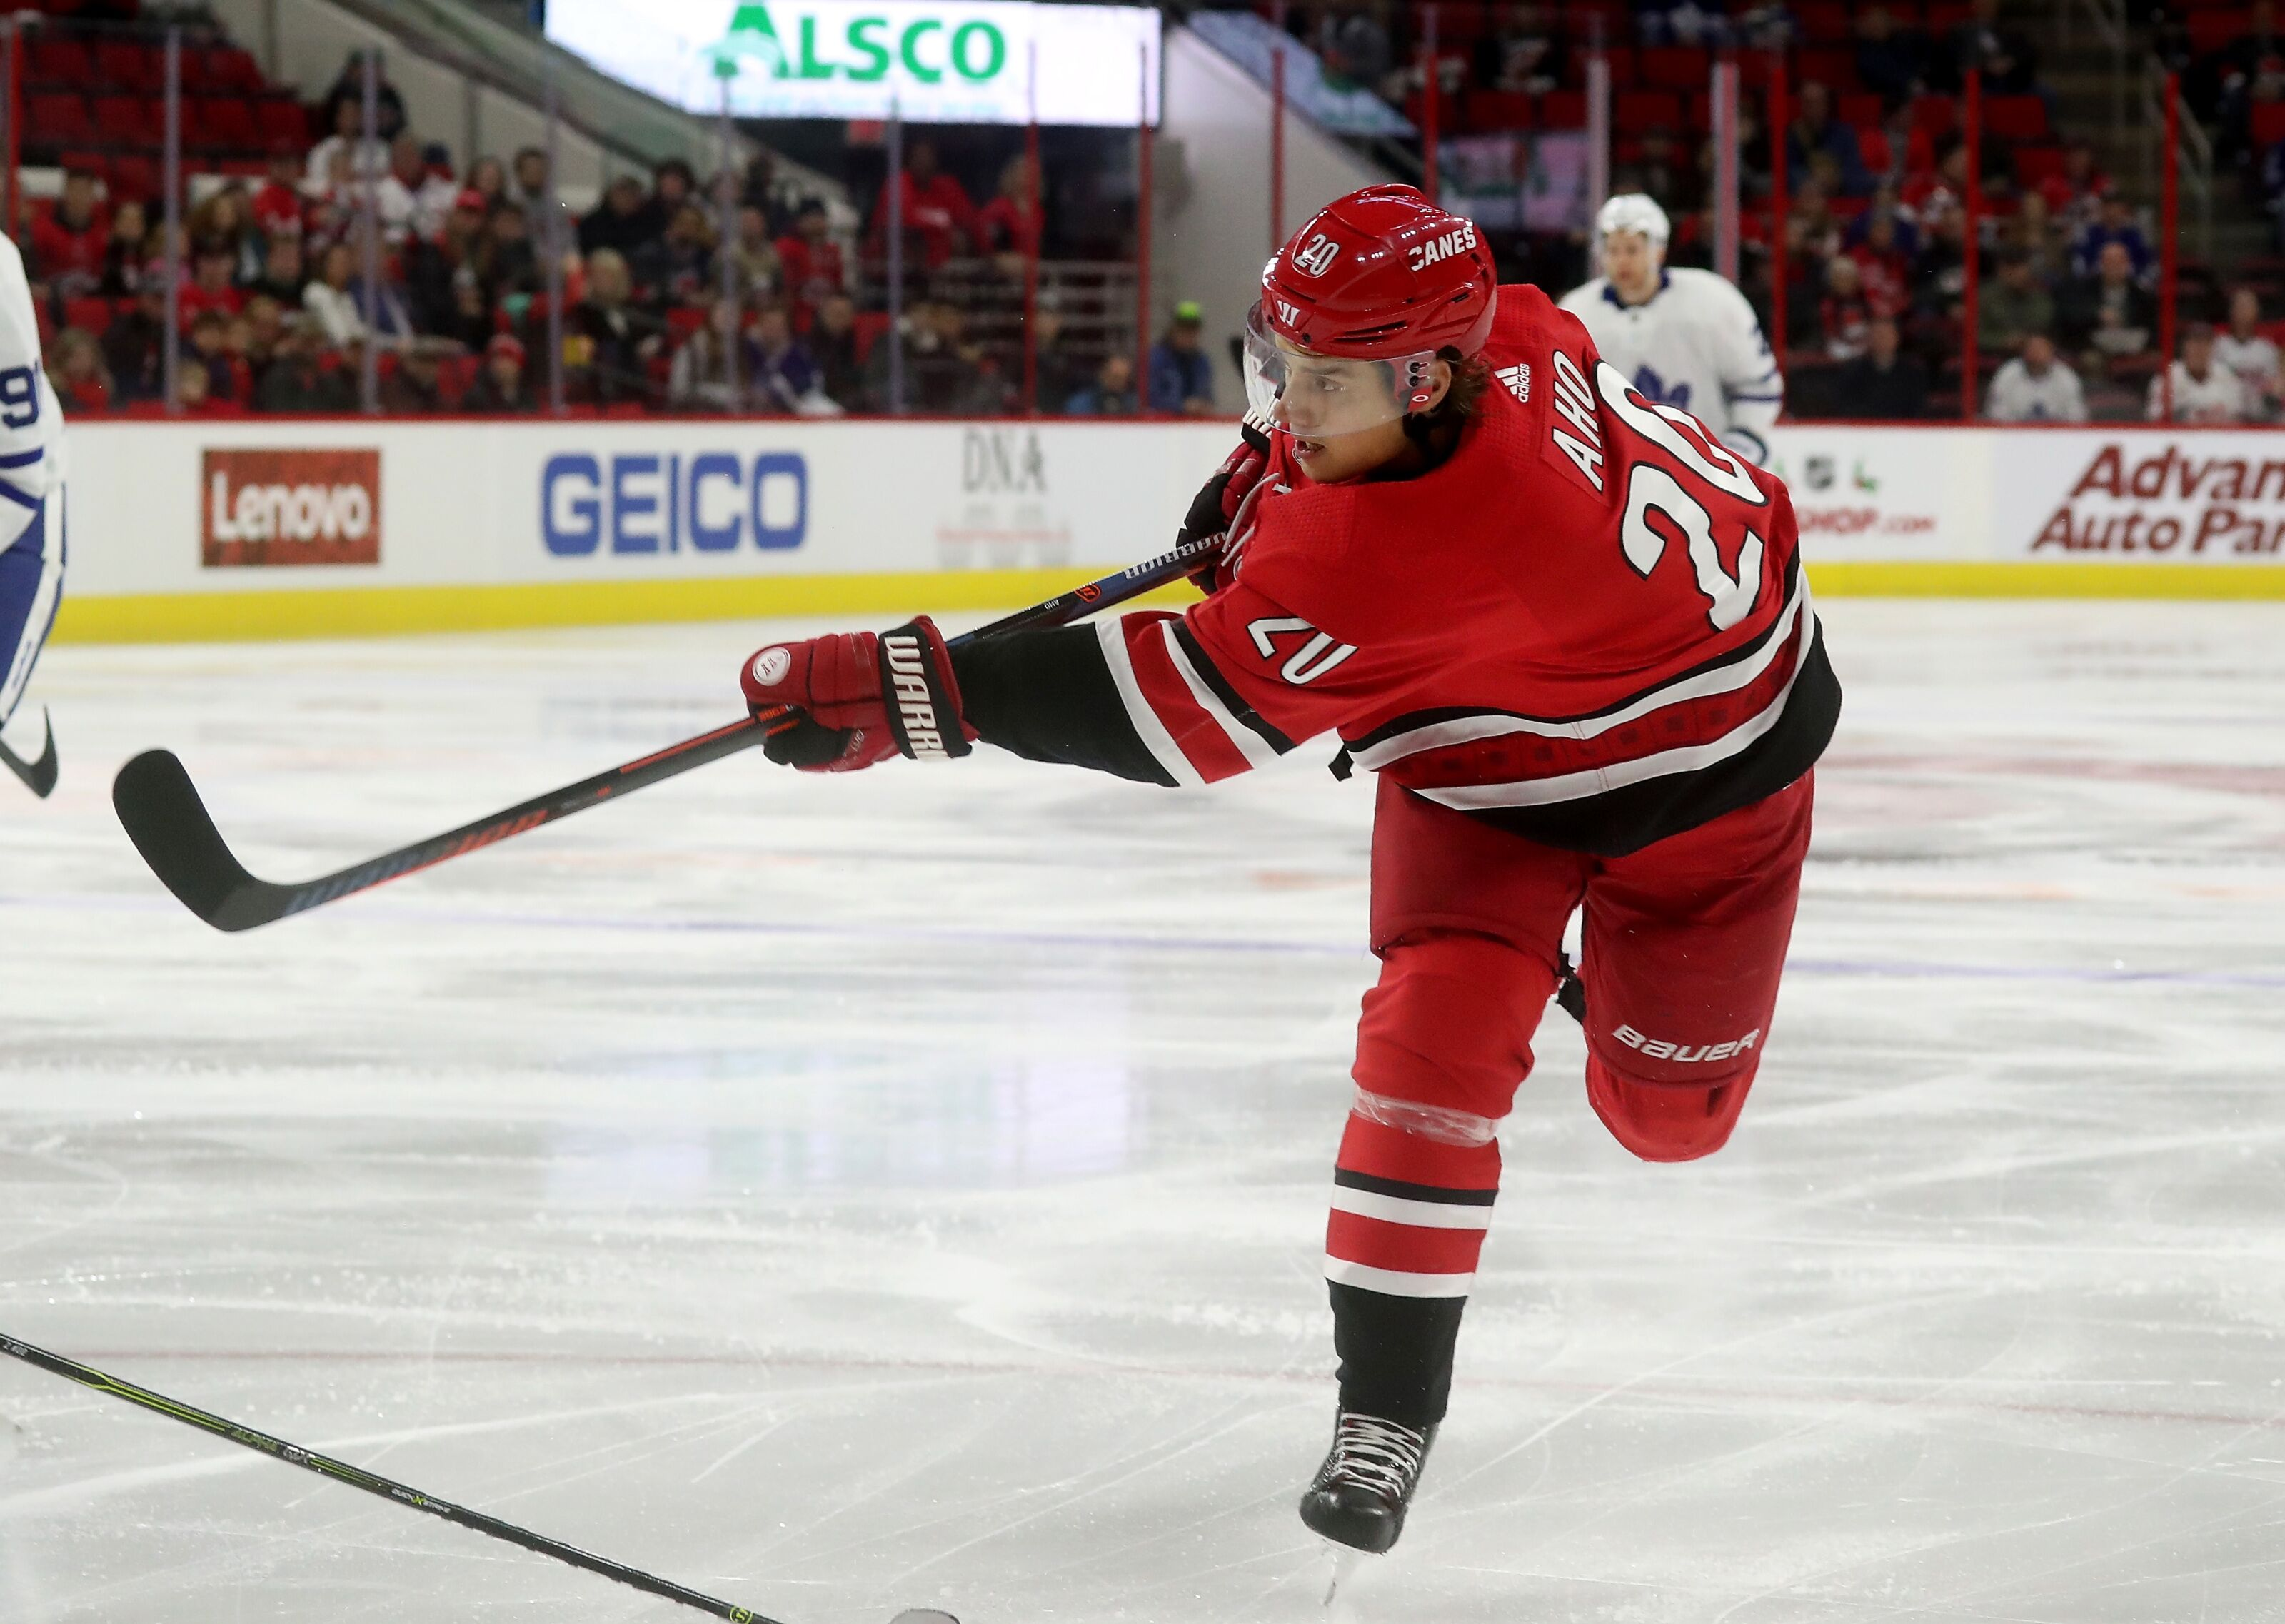 Carolina Hurricanes: The Building Rivalry With the Montreal Candadiens